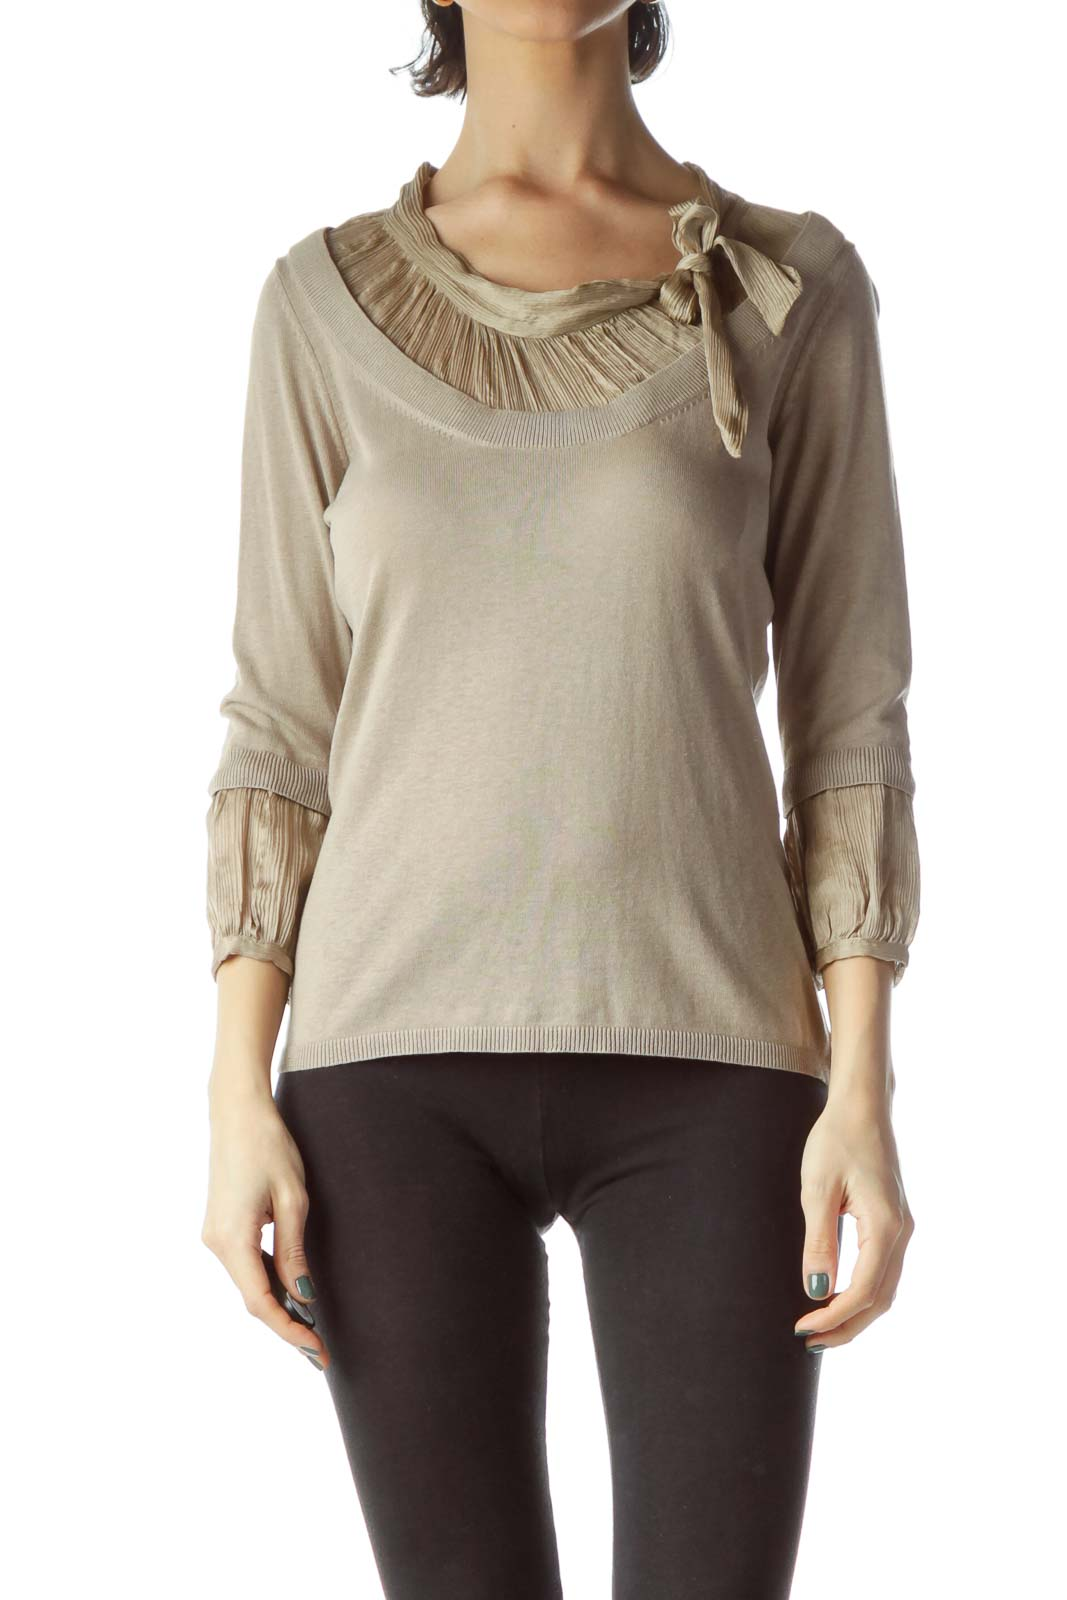 Beige Neck Bow 3/4 Sleeve Knit Top